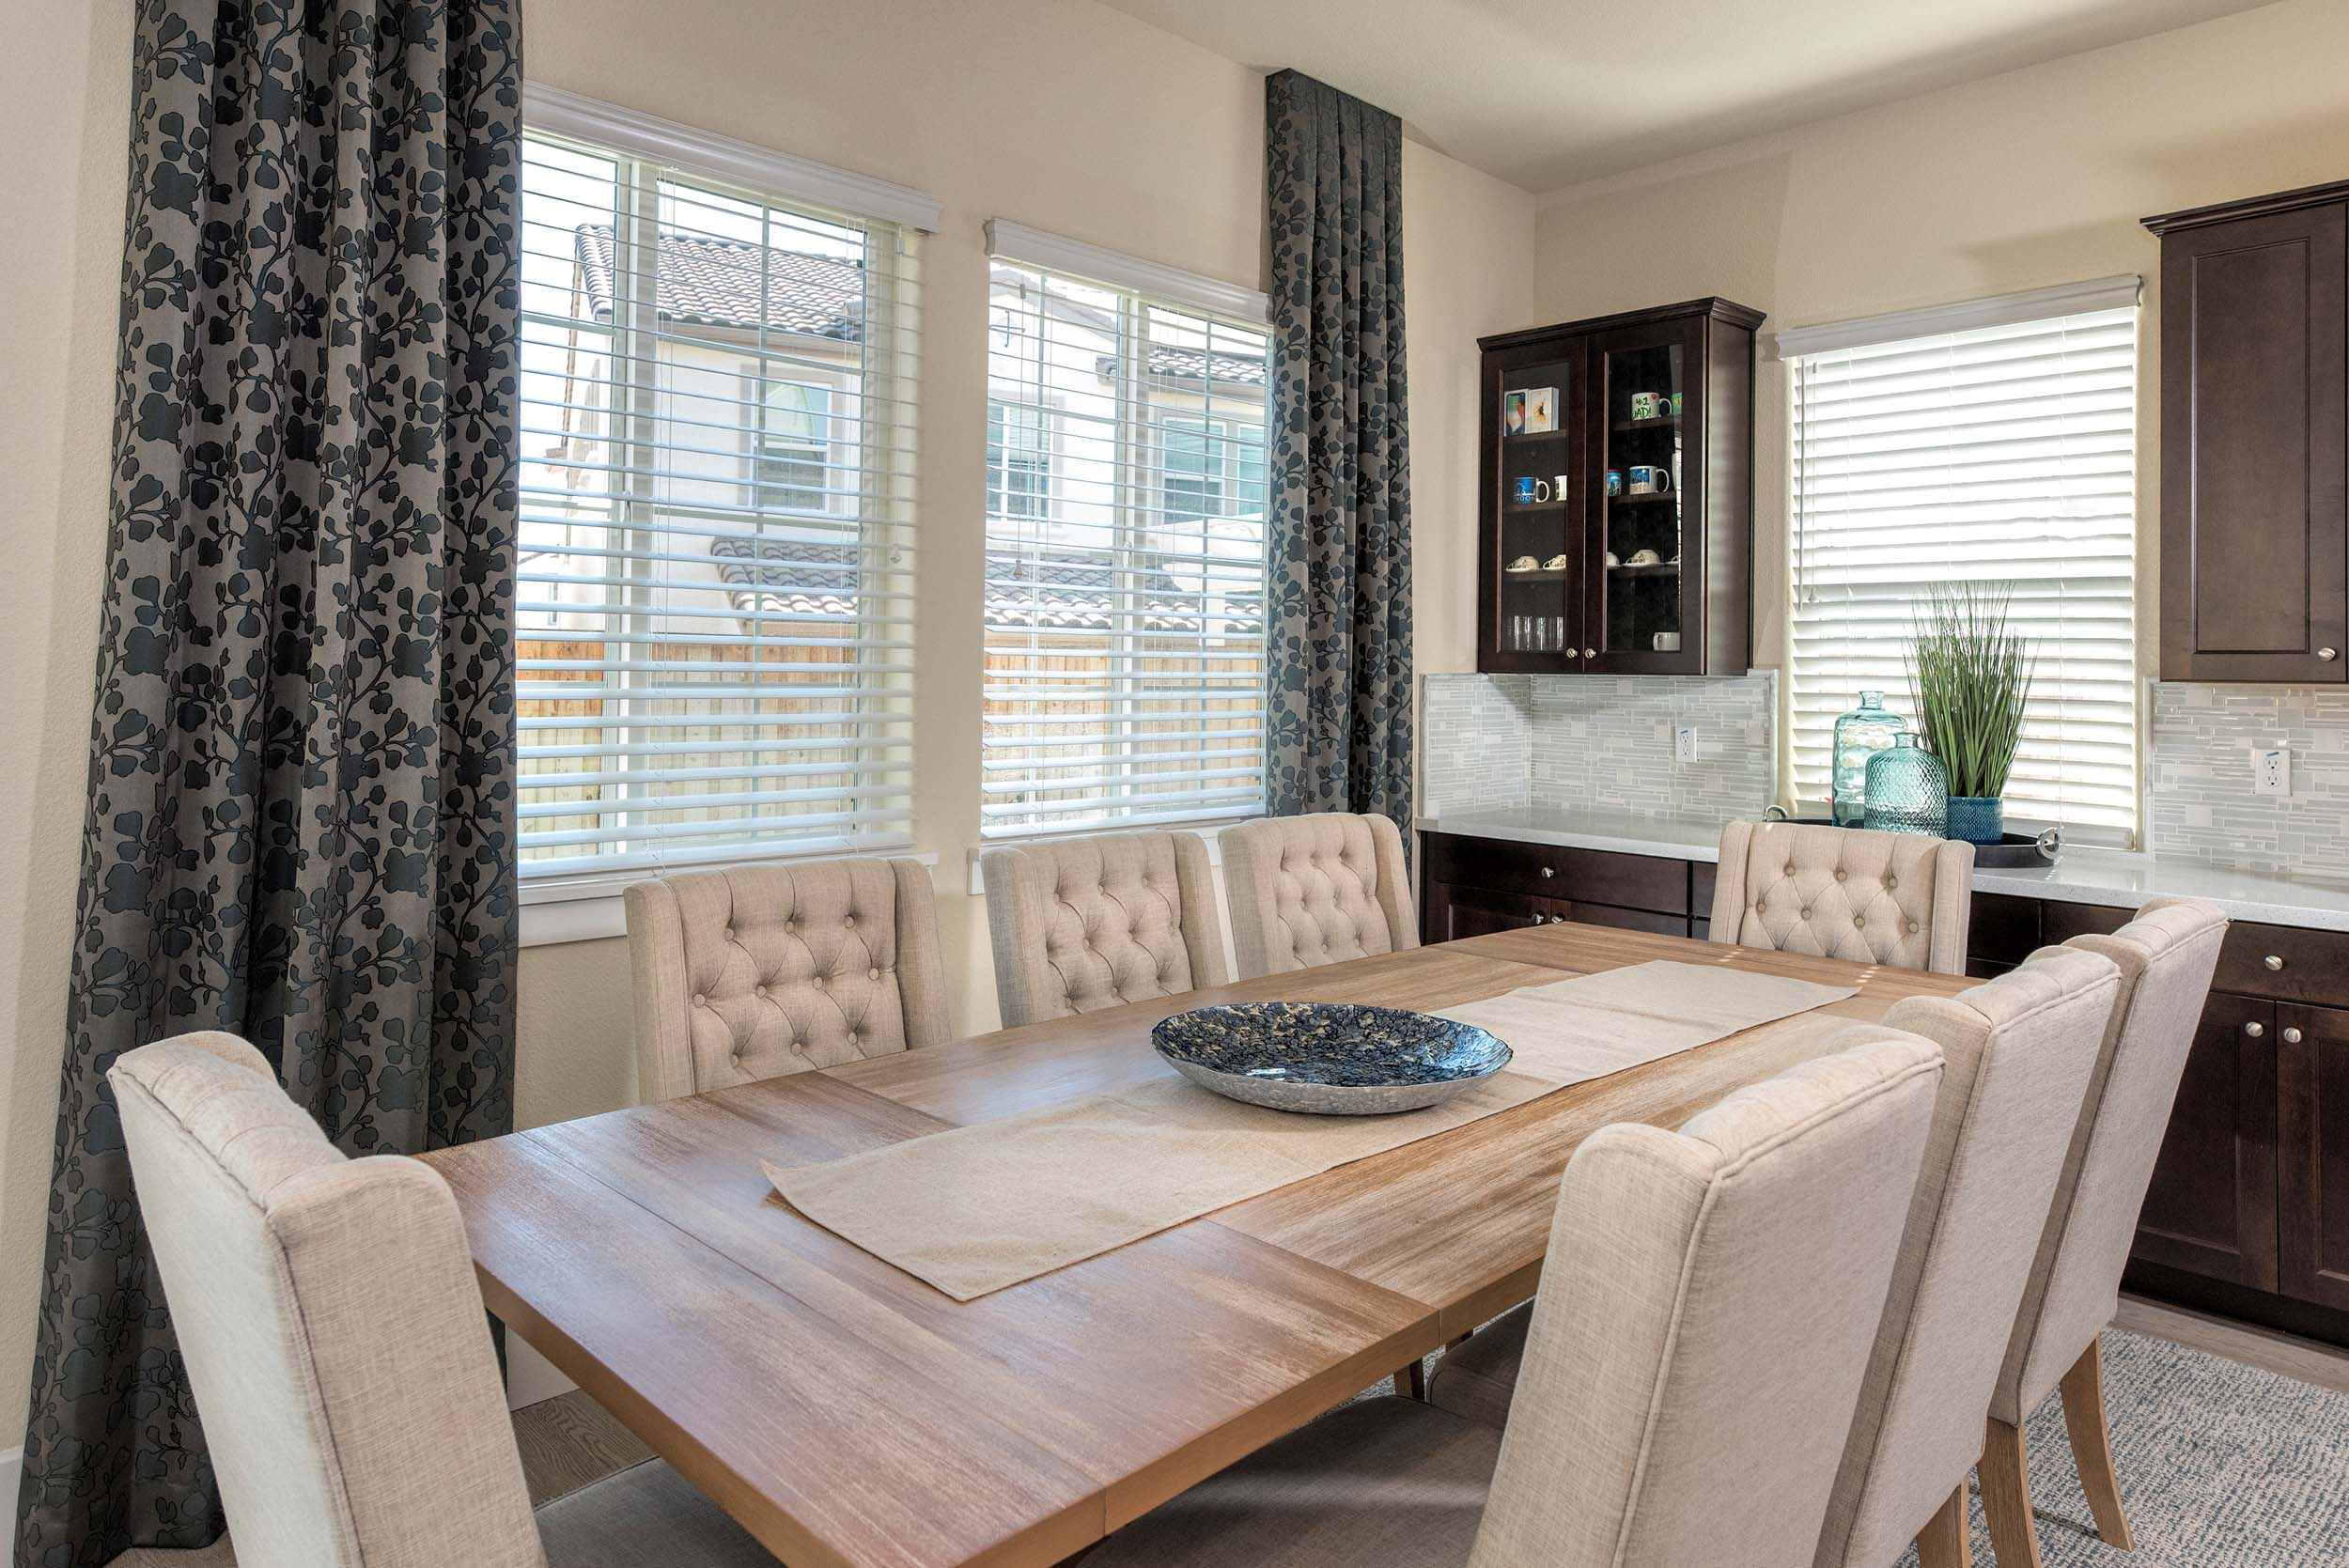 Dining table with chairs, large window, wooden table and wooden cabinet